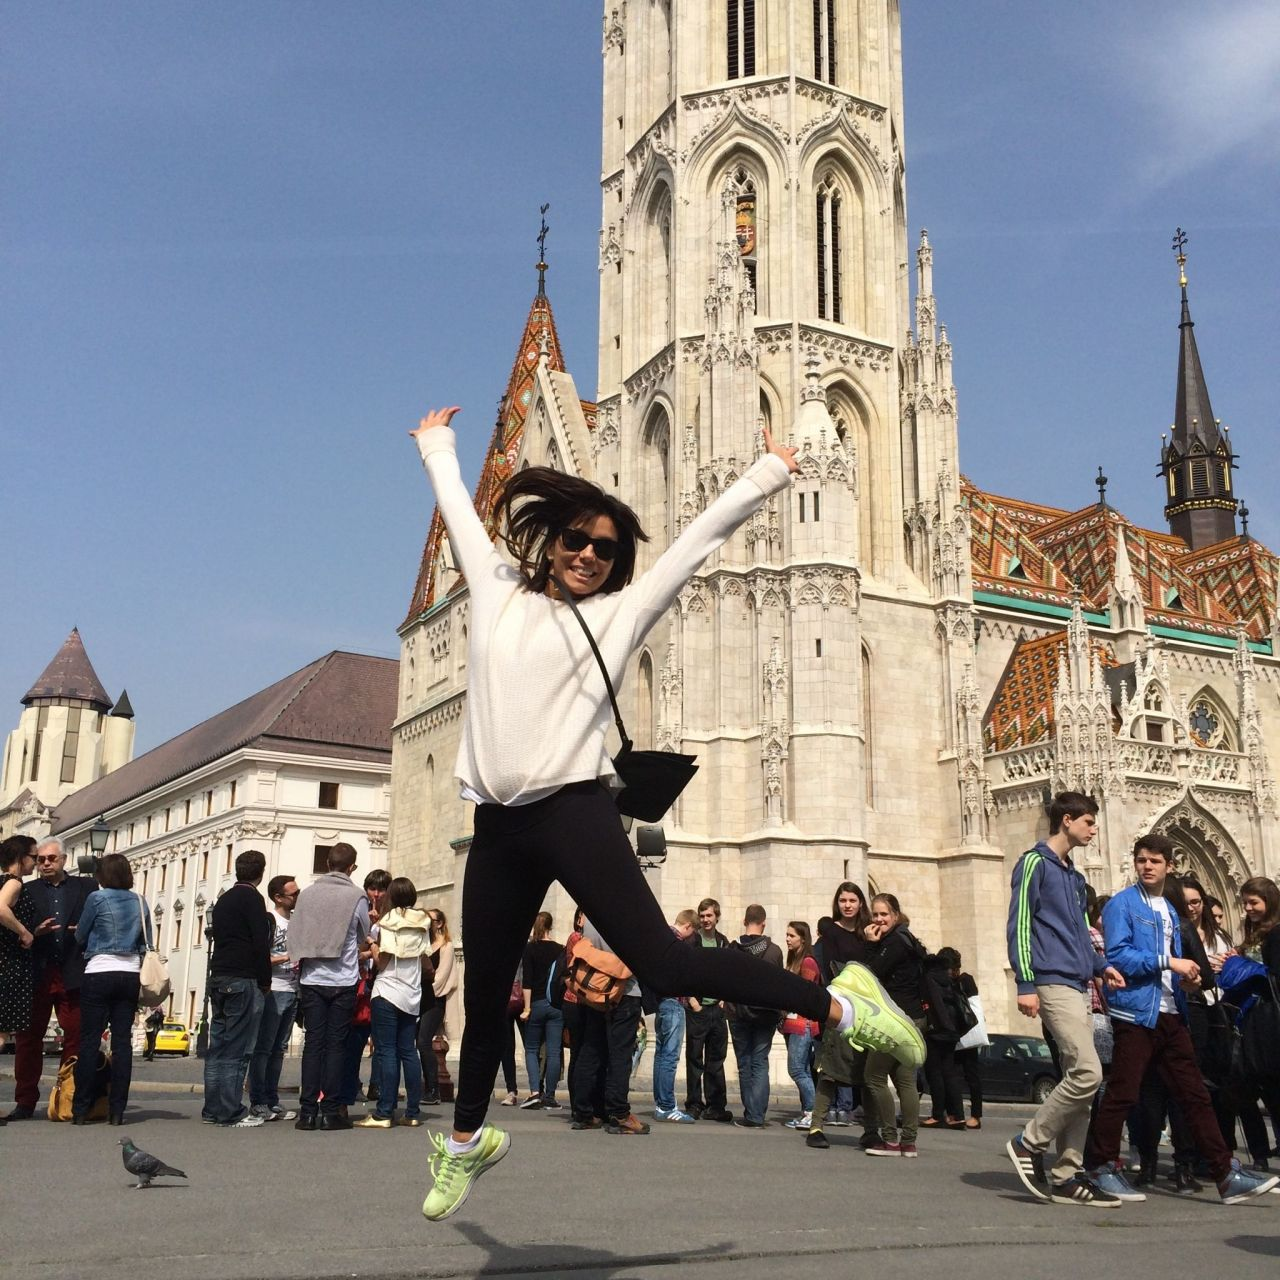 Eva Longoria in Budapest - Jumps for Joy - April 2014